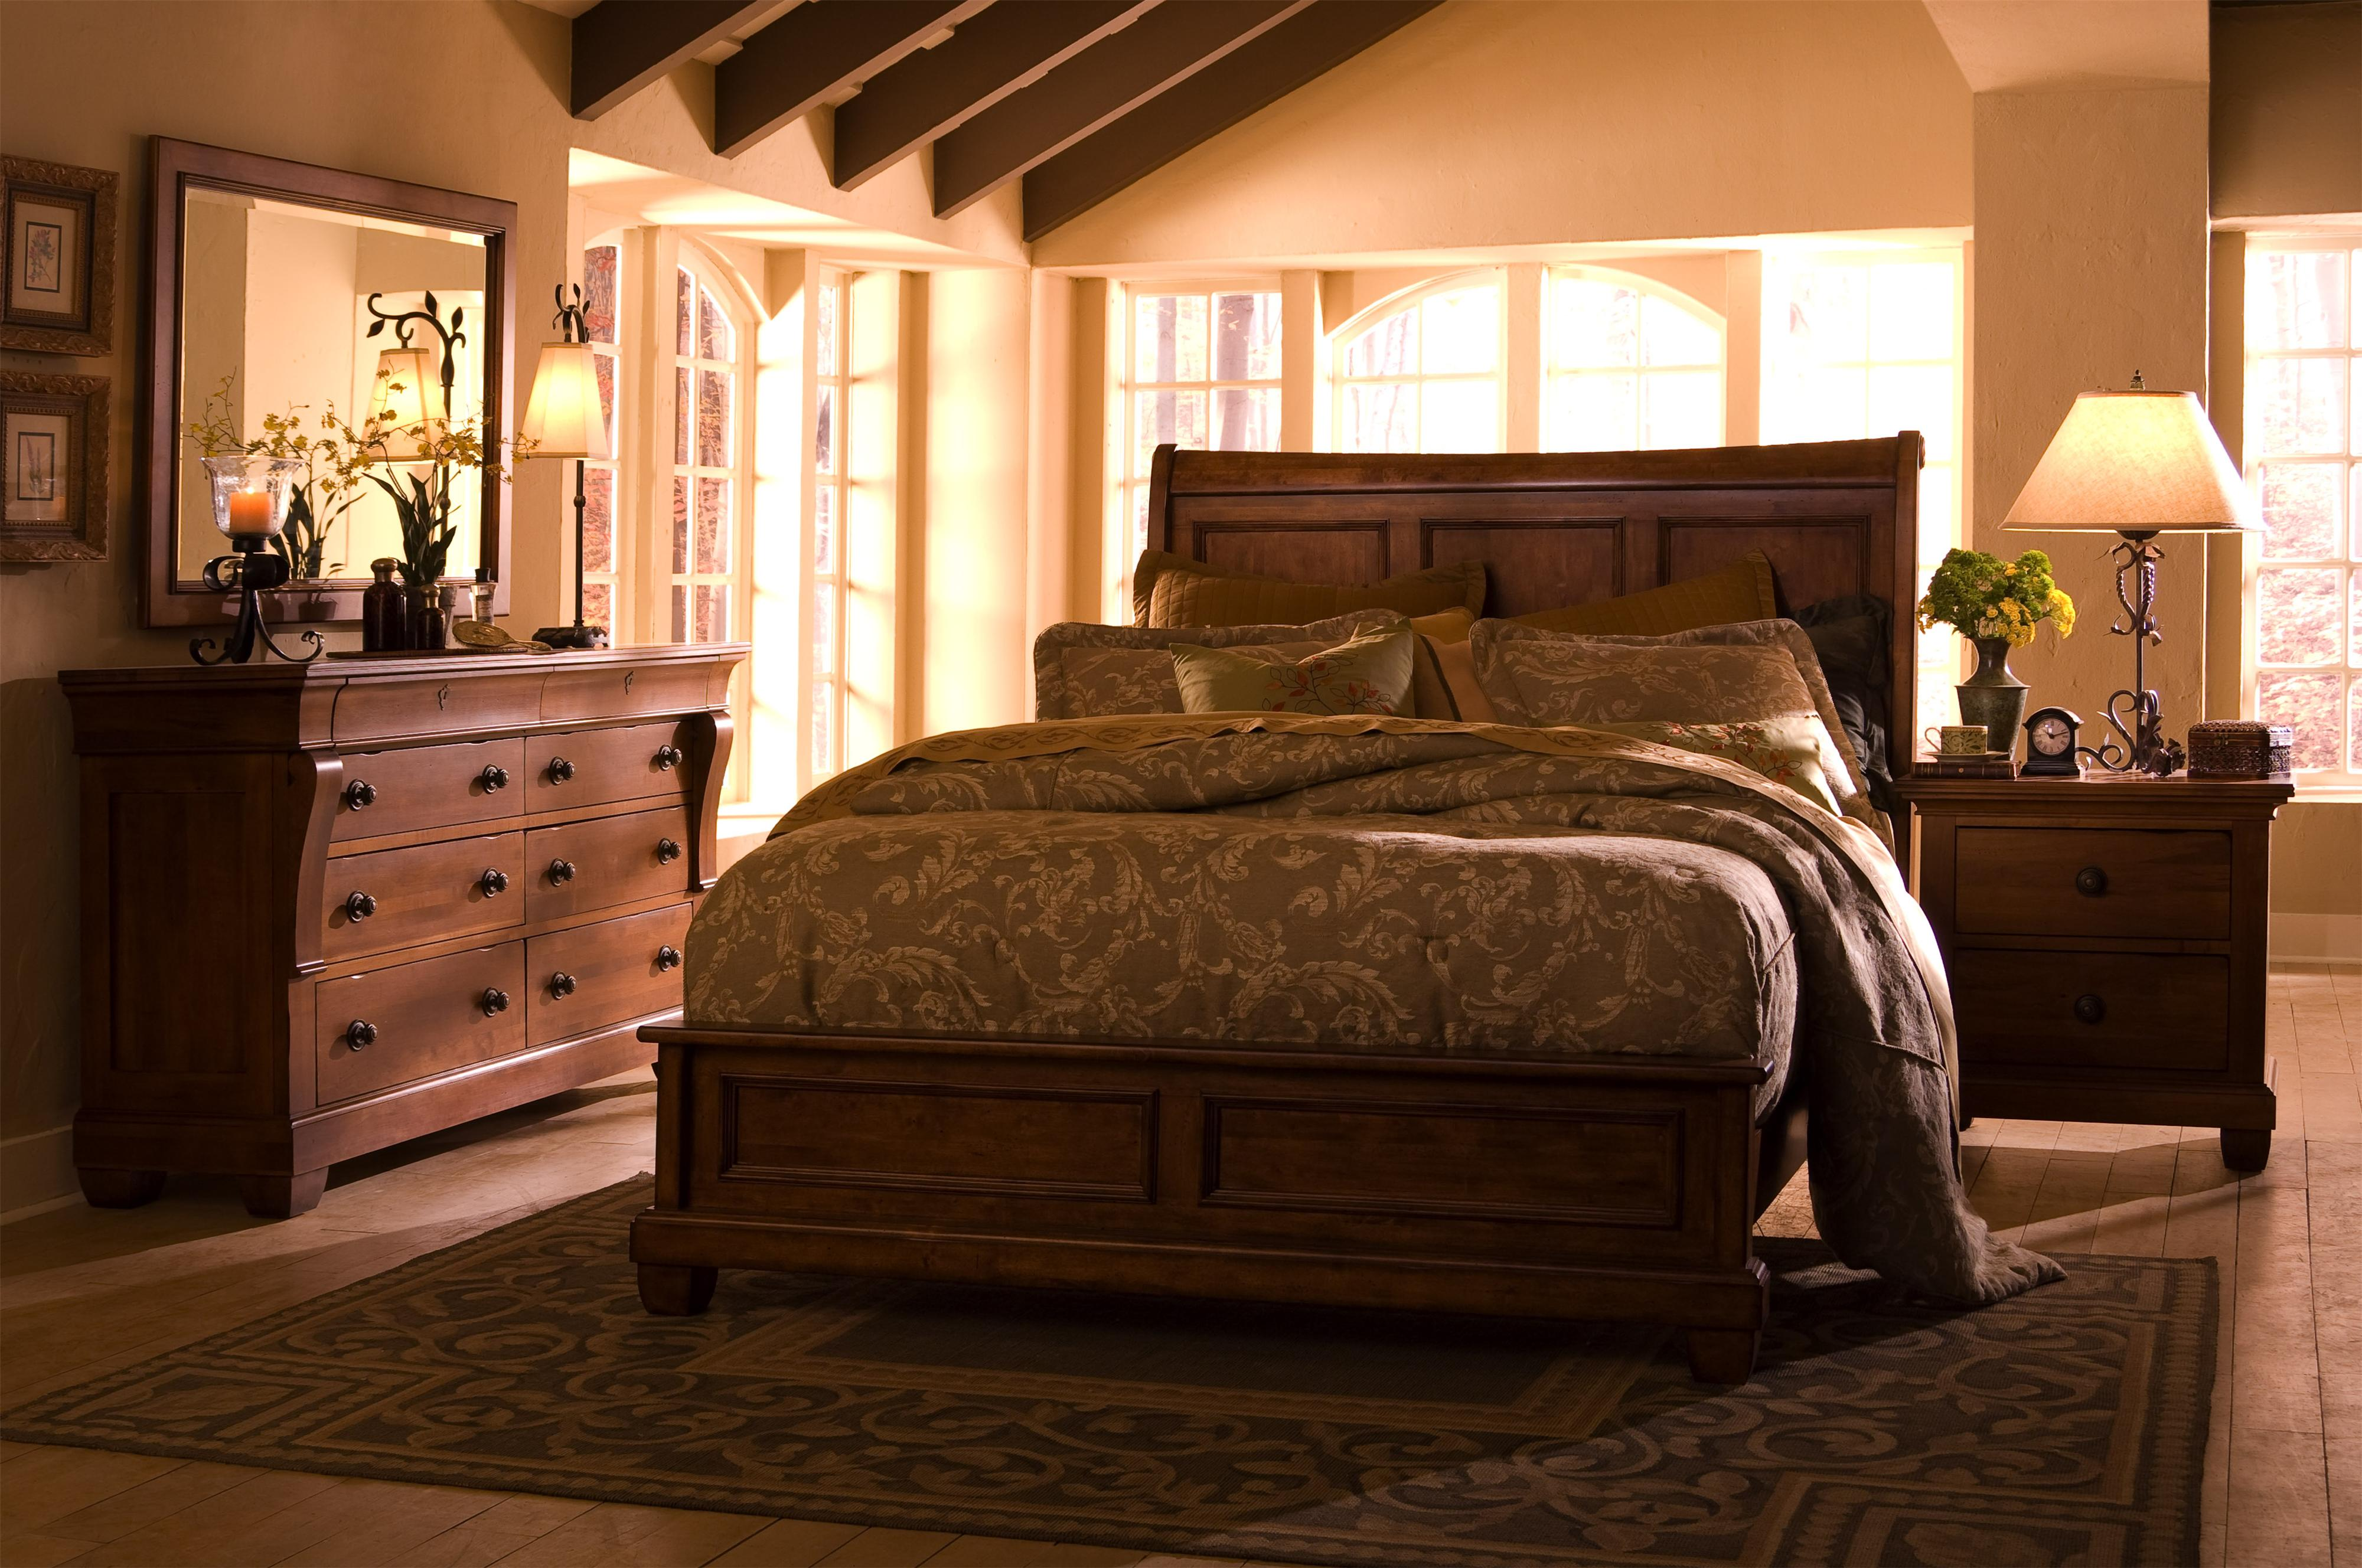 Bedroom Dresser with 8 Drawers by Kincaid Furniture